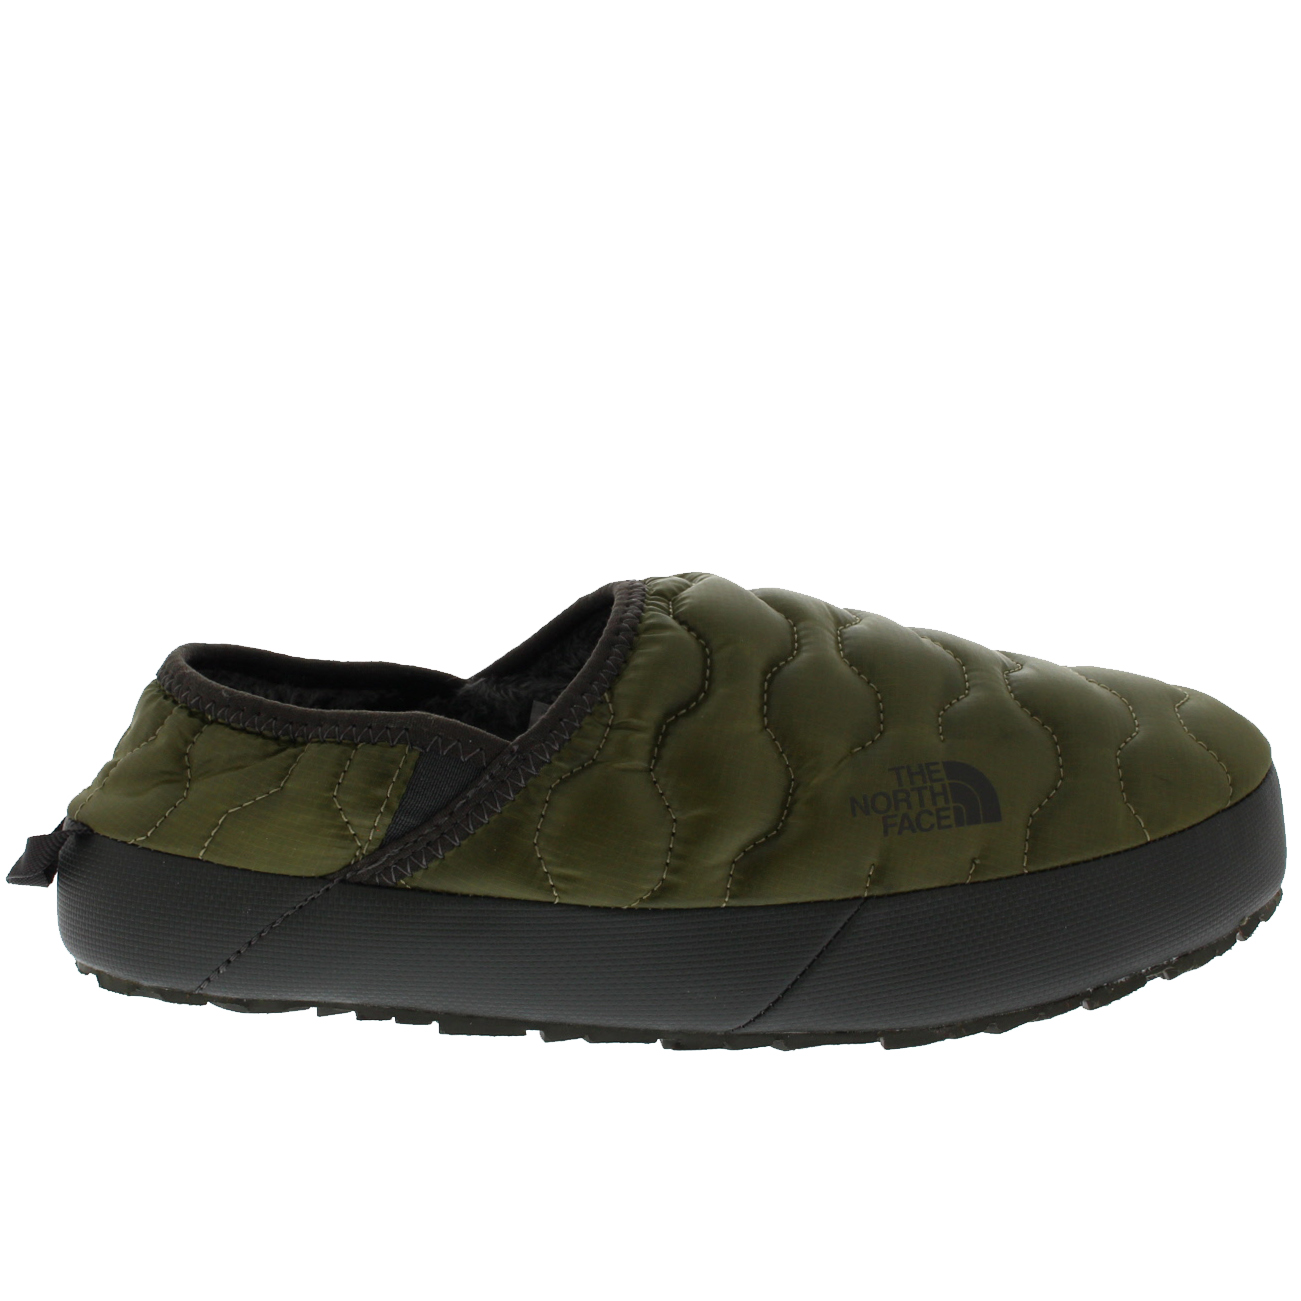 7a0f040fe2ed Mens The North Face Thermoball Traction Mule IV Indoor Winter Slippers All  Sizes